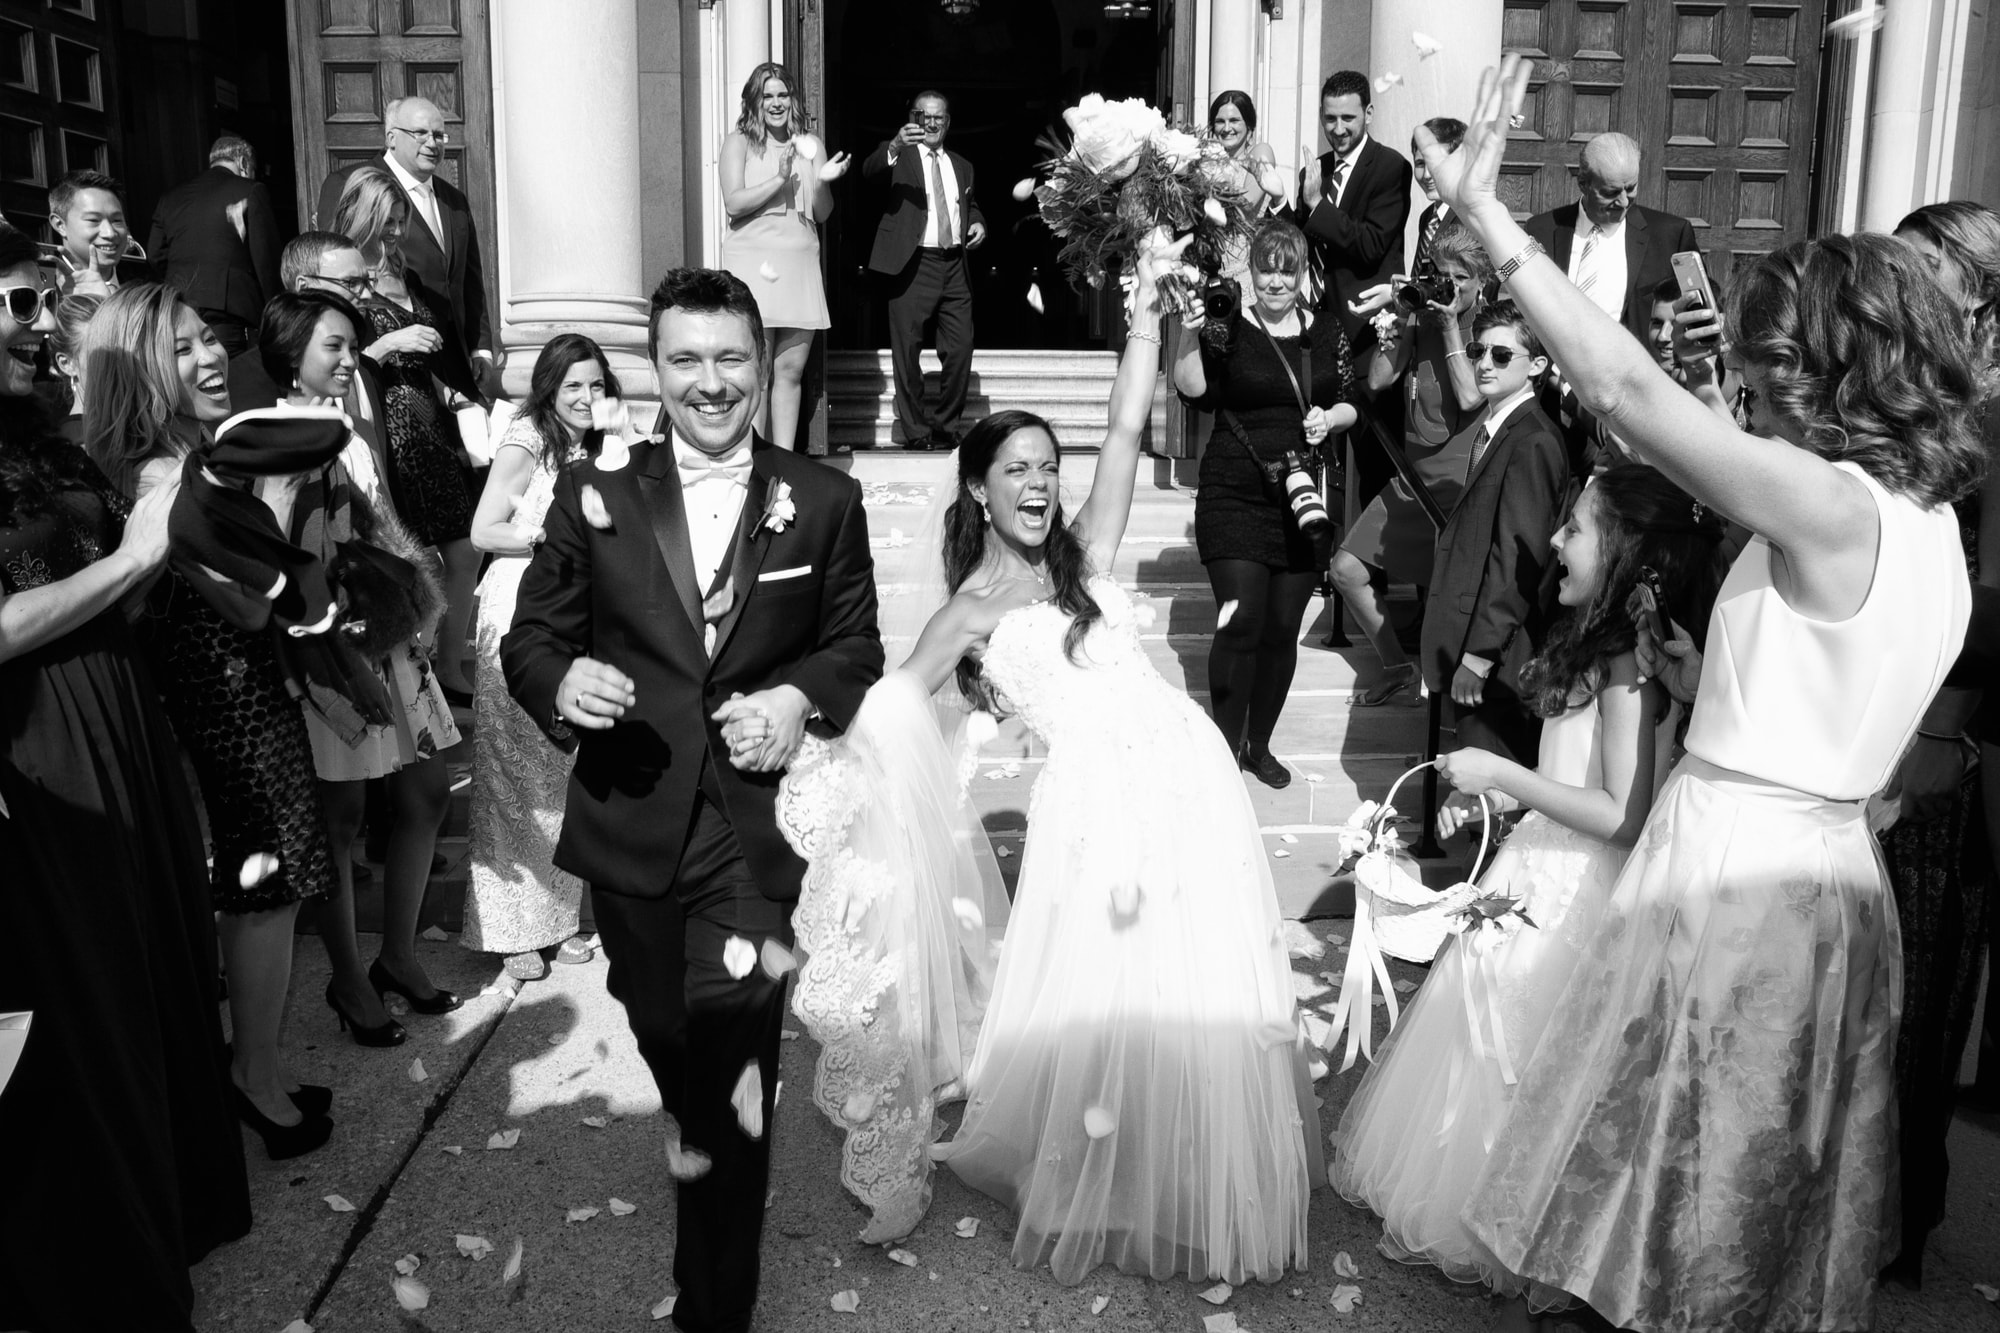 Bride and Groom exit Greek church after wedding ceremony